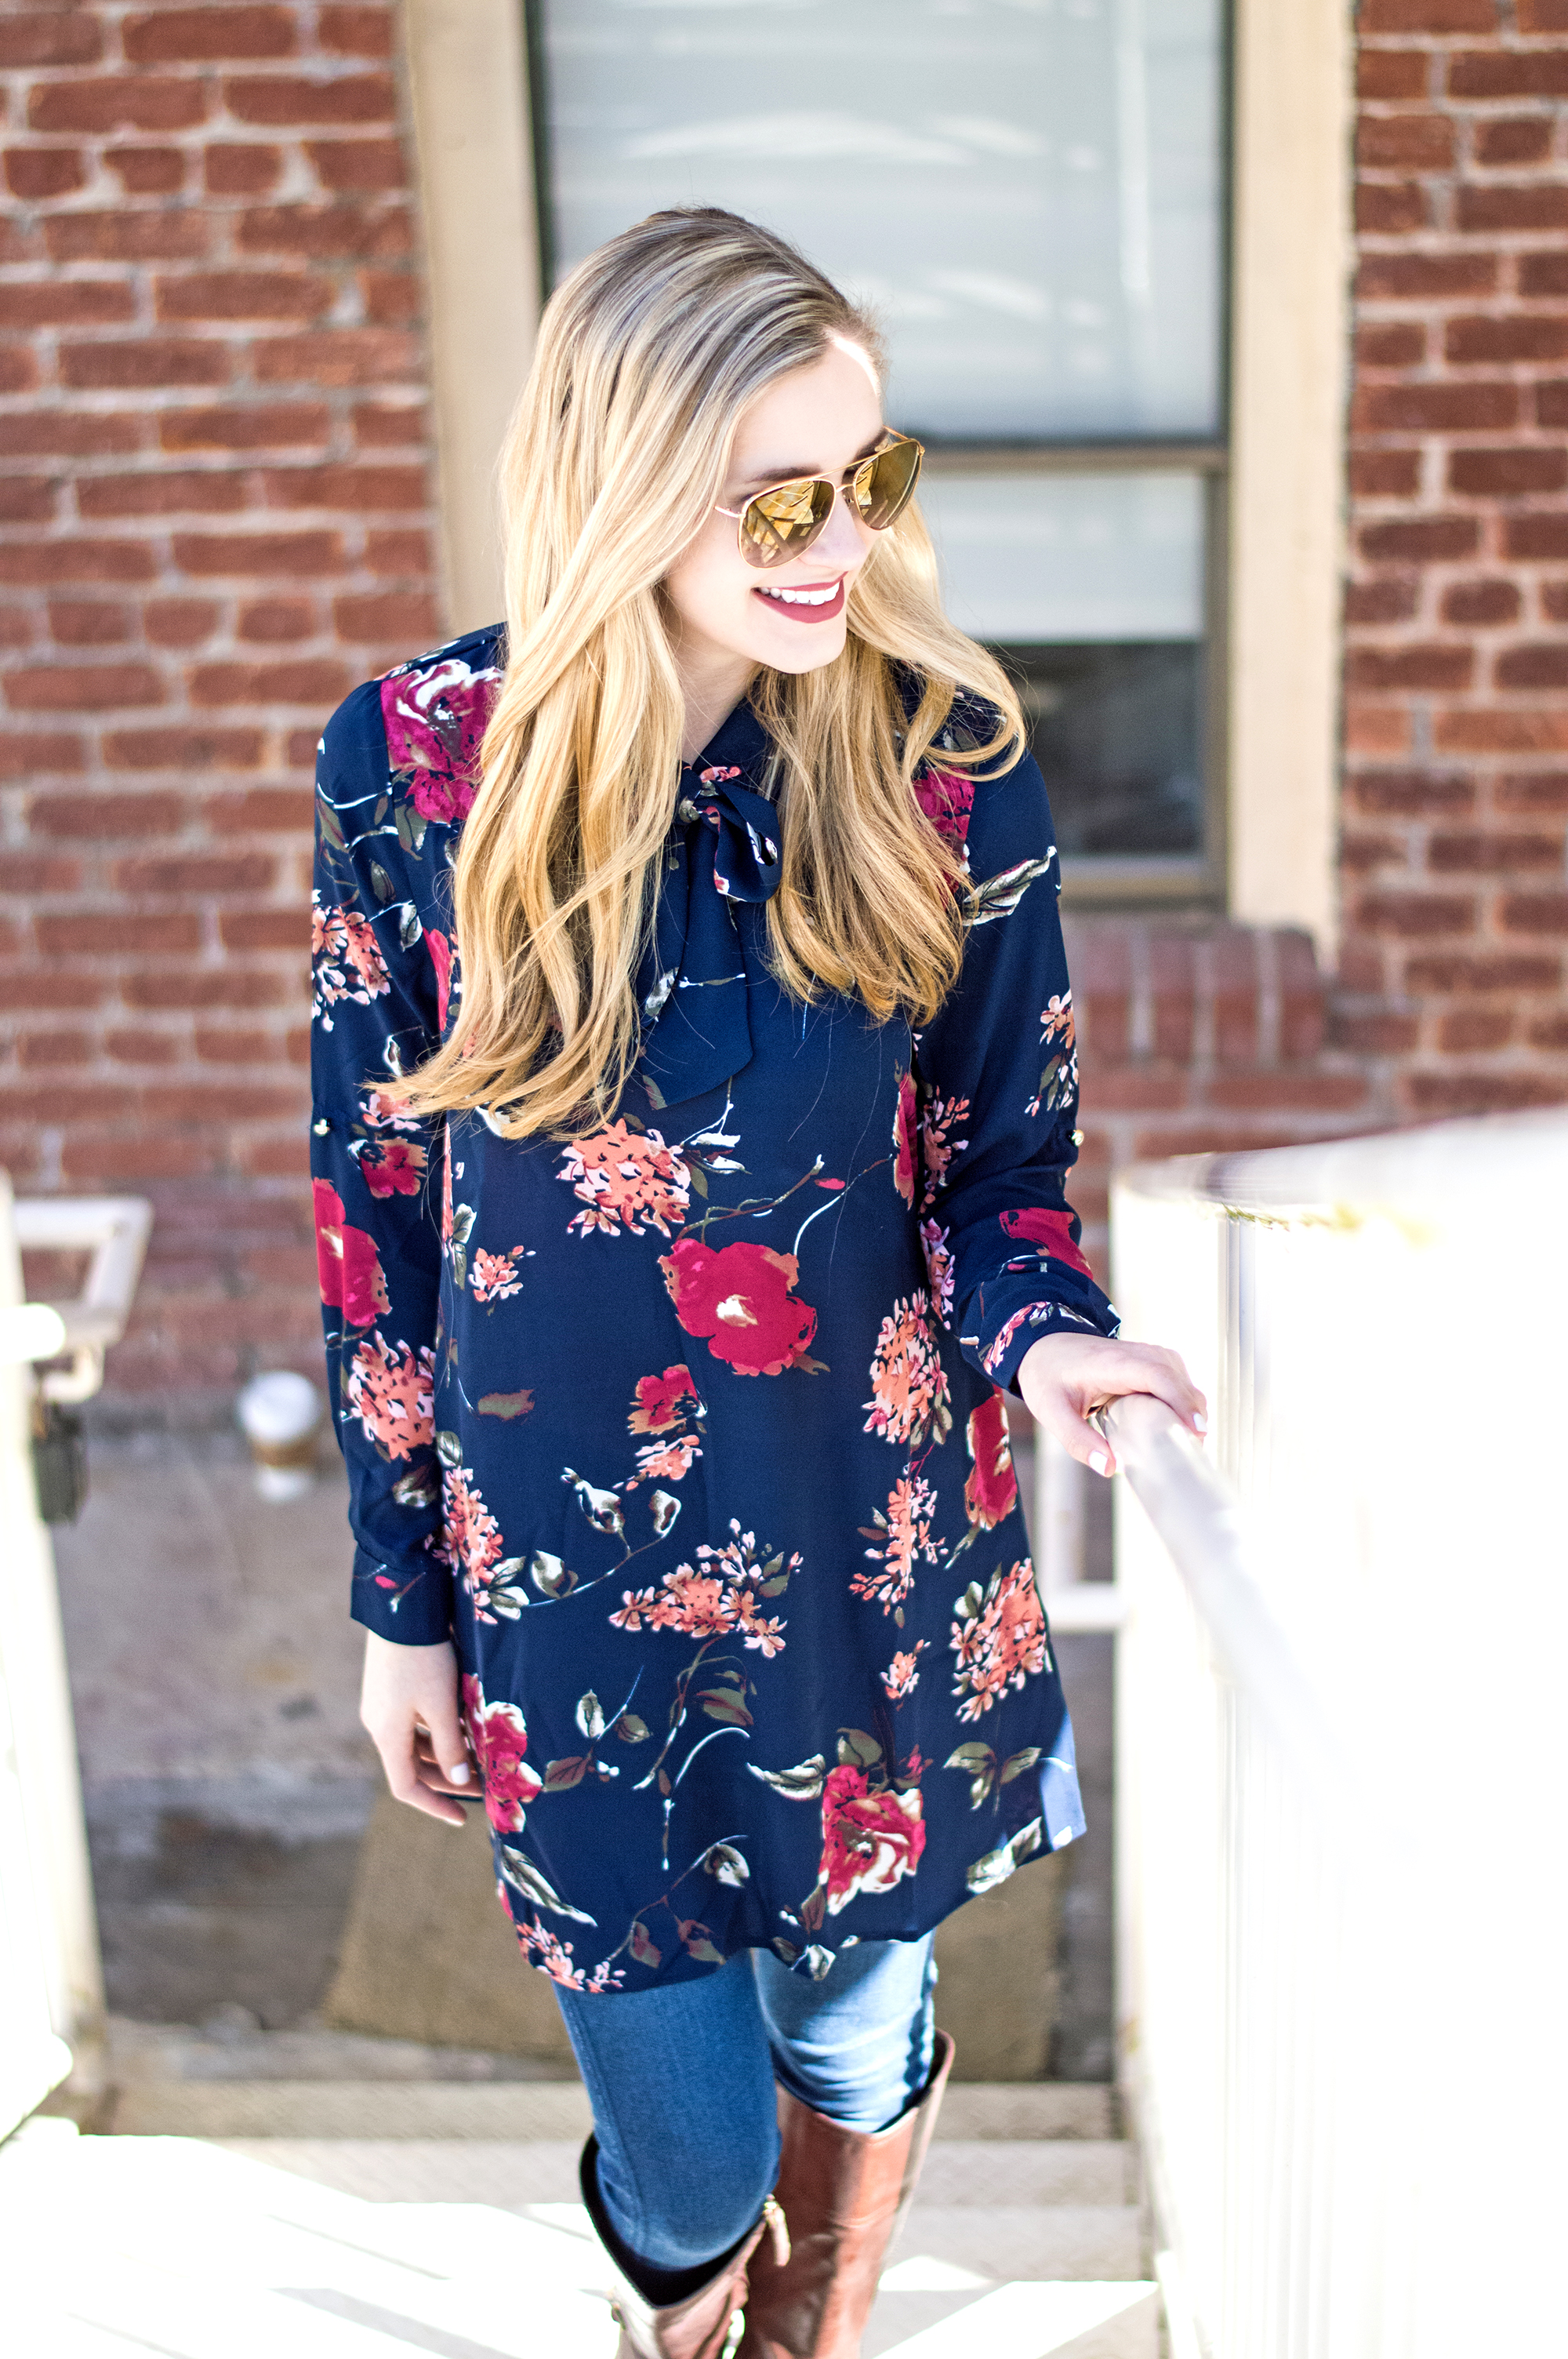 styelled-blog-elle-elisabeth-brick-city-closet-floral-tunic-bow-burberry-sunglasses-hudson-jeans-tory-burch-starbucks-ltkit-fblogger-style-fashion-blogger-valentine's-date-01